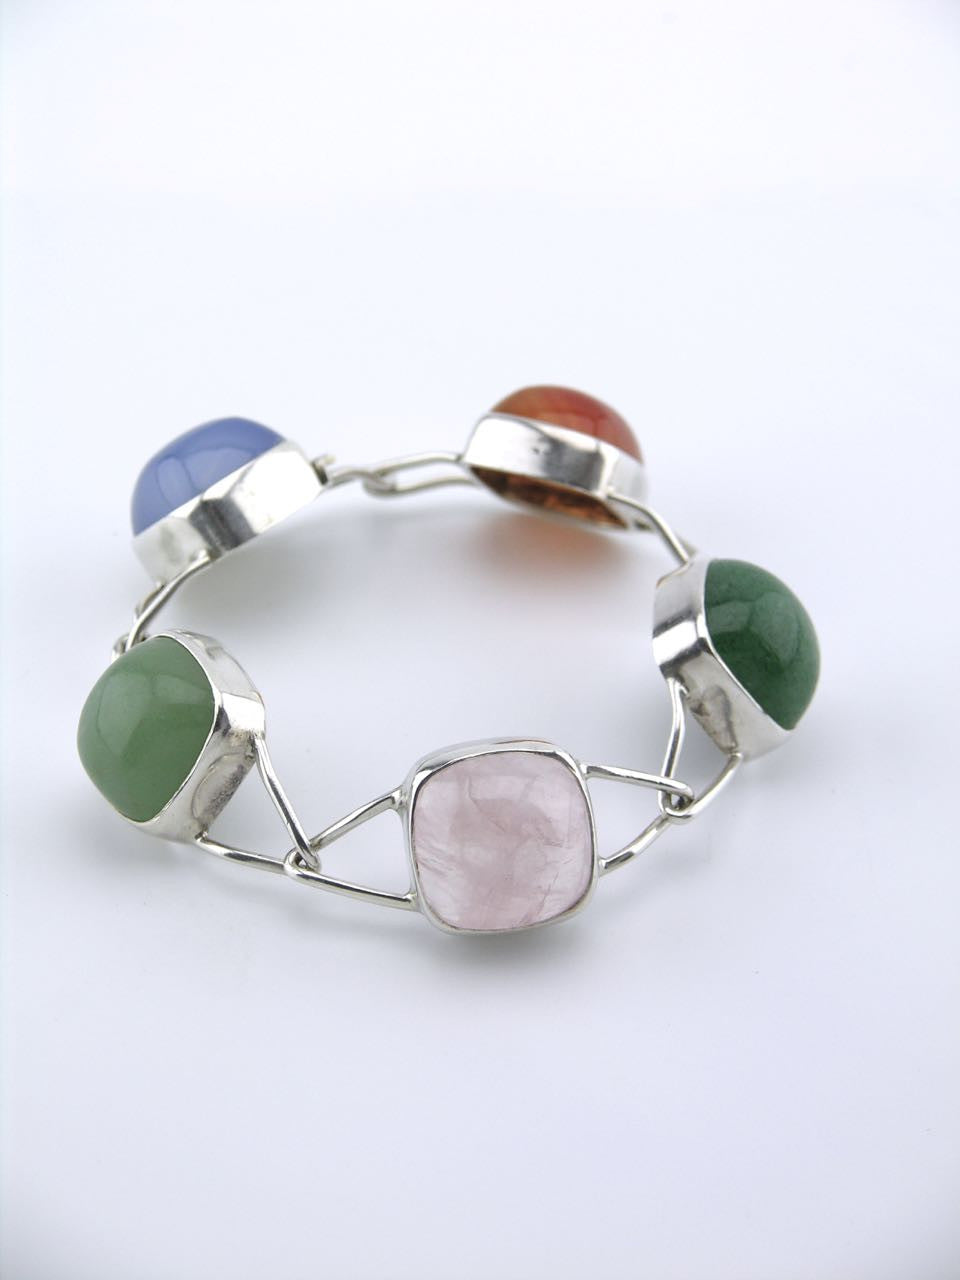 Swedish modernist silver and cabachon pebble bracelet